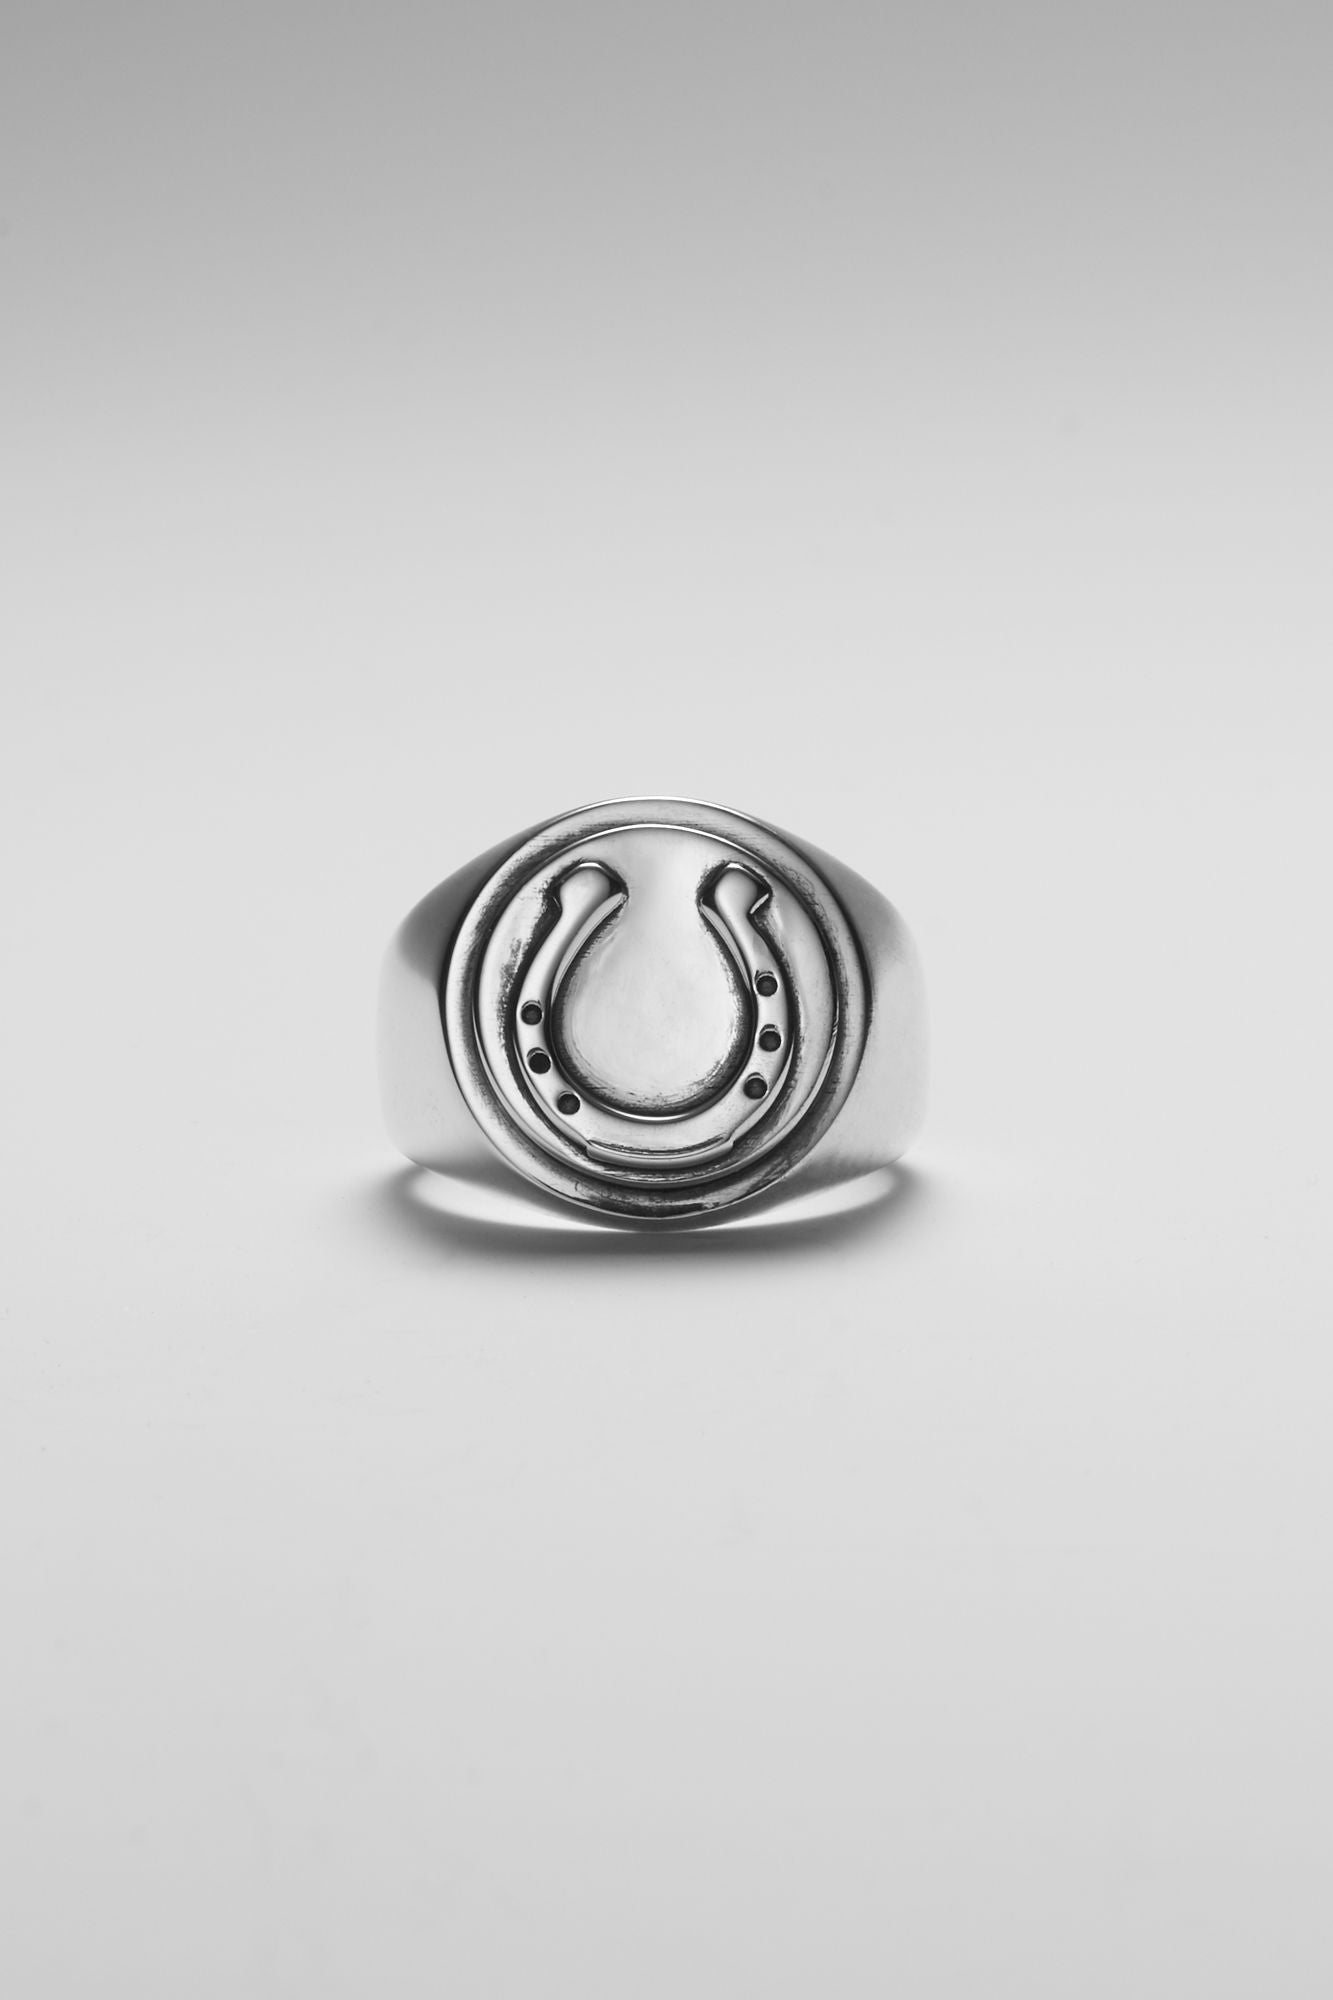 Horseshoe Signet Ring